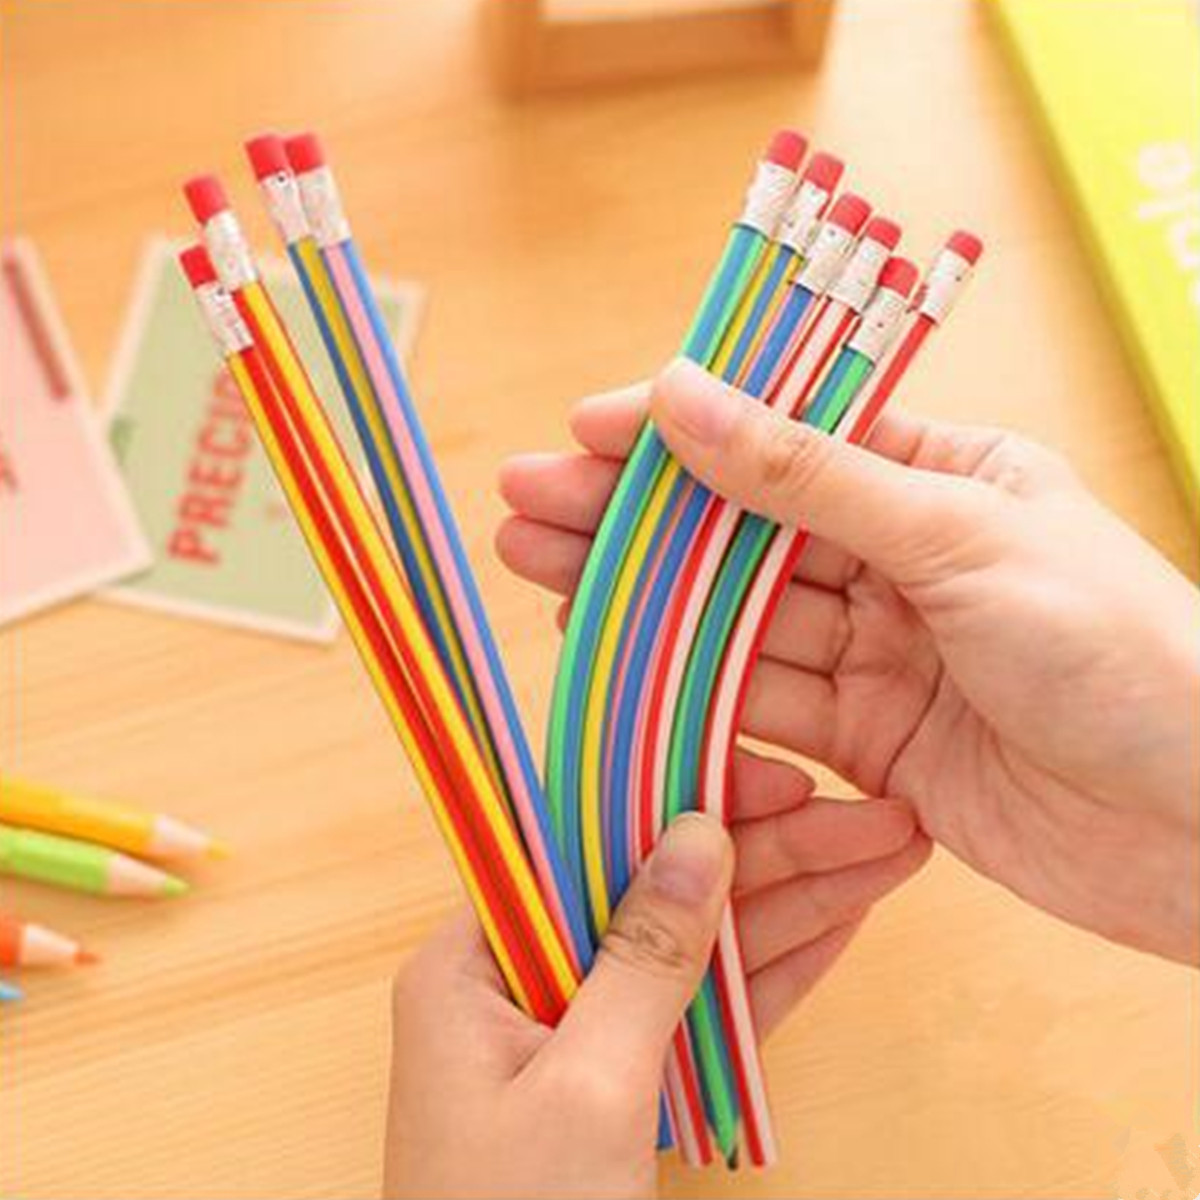 200x Bendy Flexible Soft Pencil With Eraser For Kids Writing School Student best